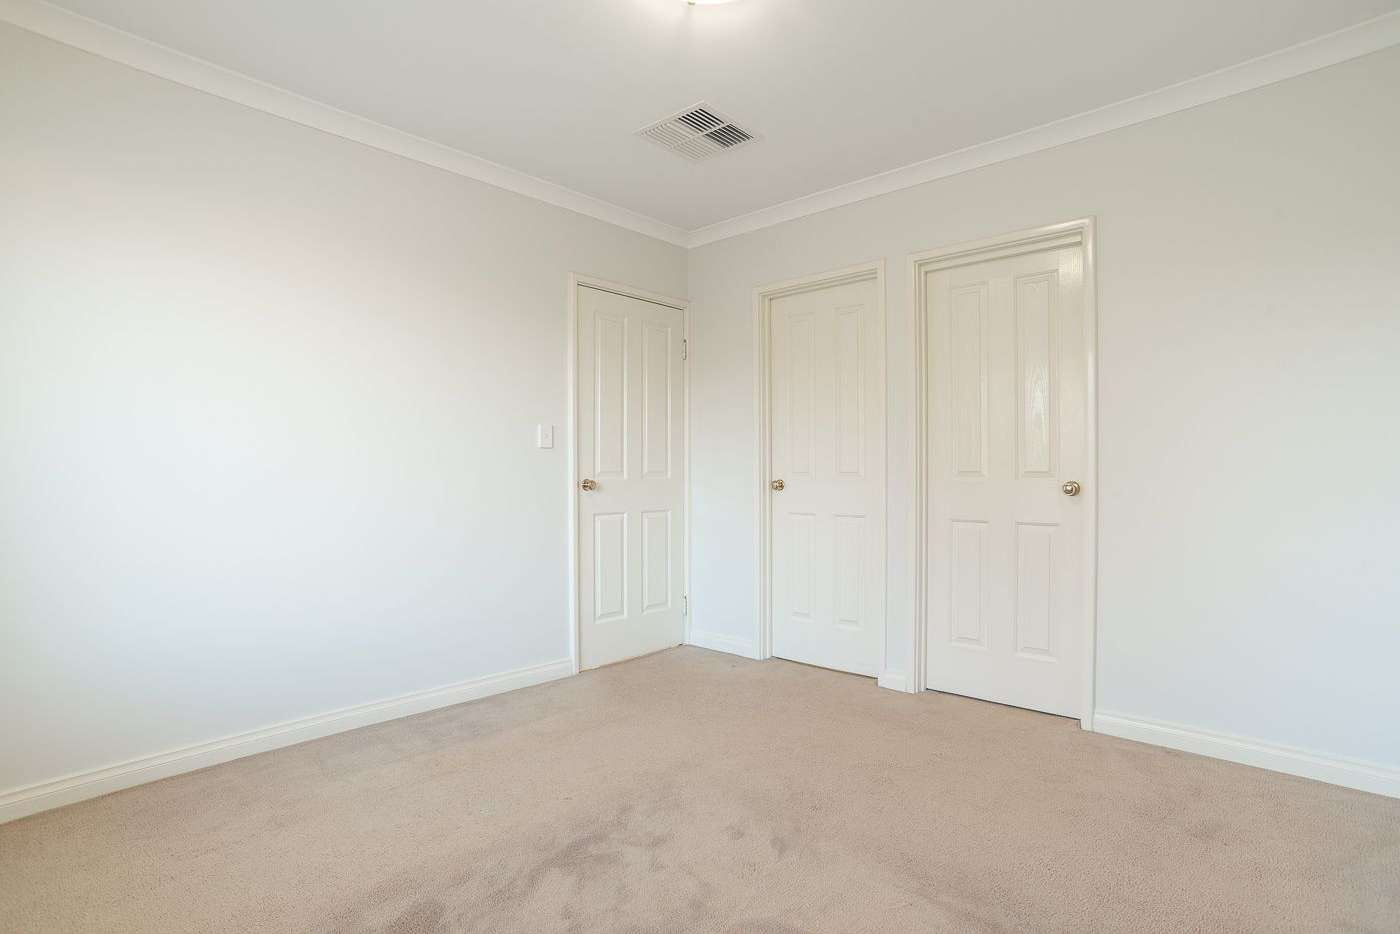 Fifth view of Homely house listing, 1/122 Thomas Street, Queens Park WA 6107